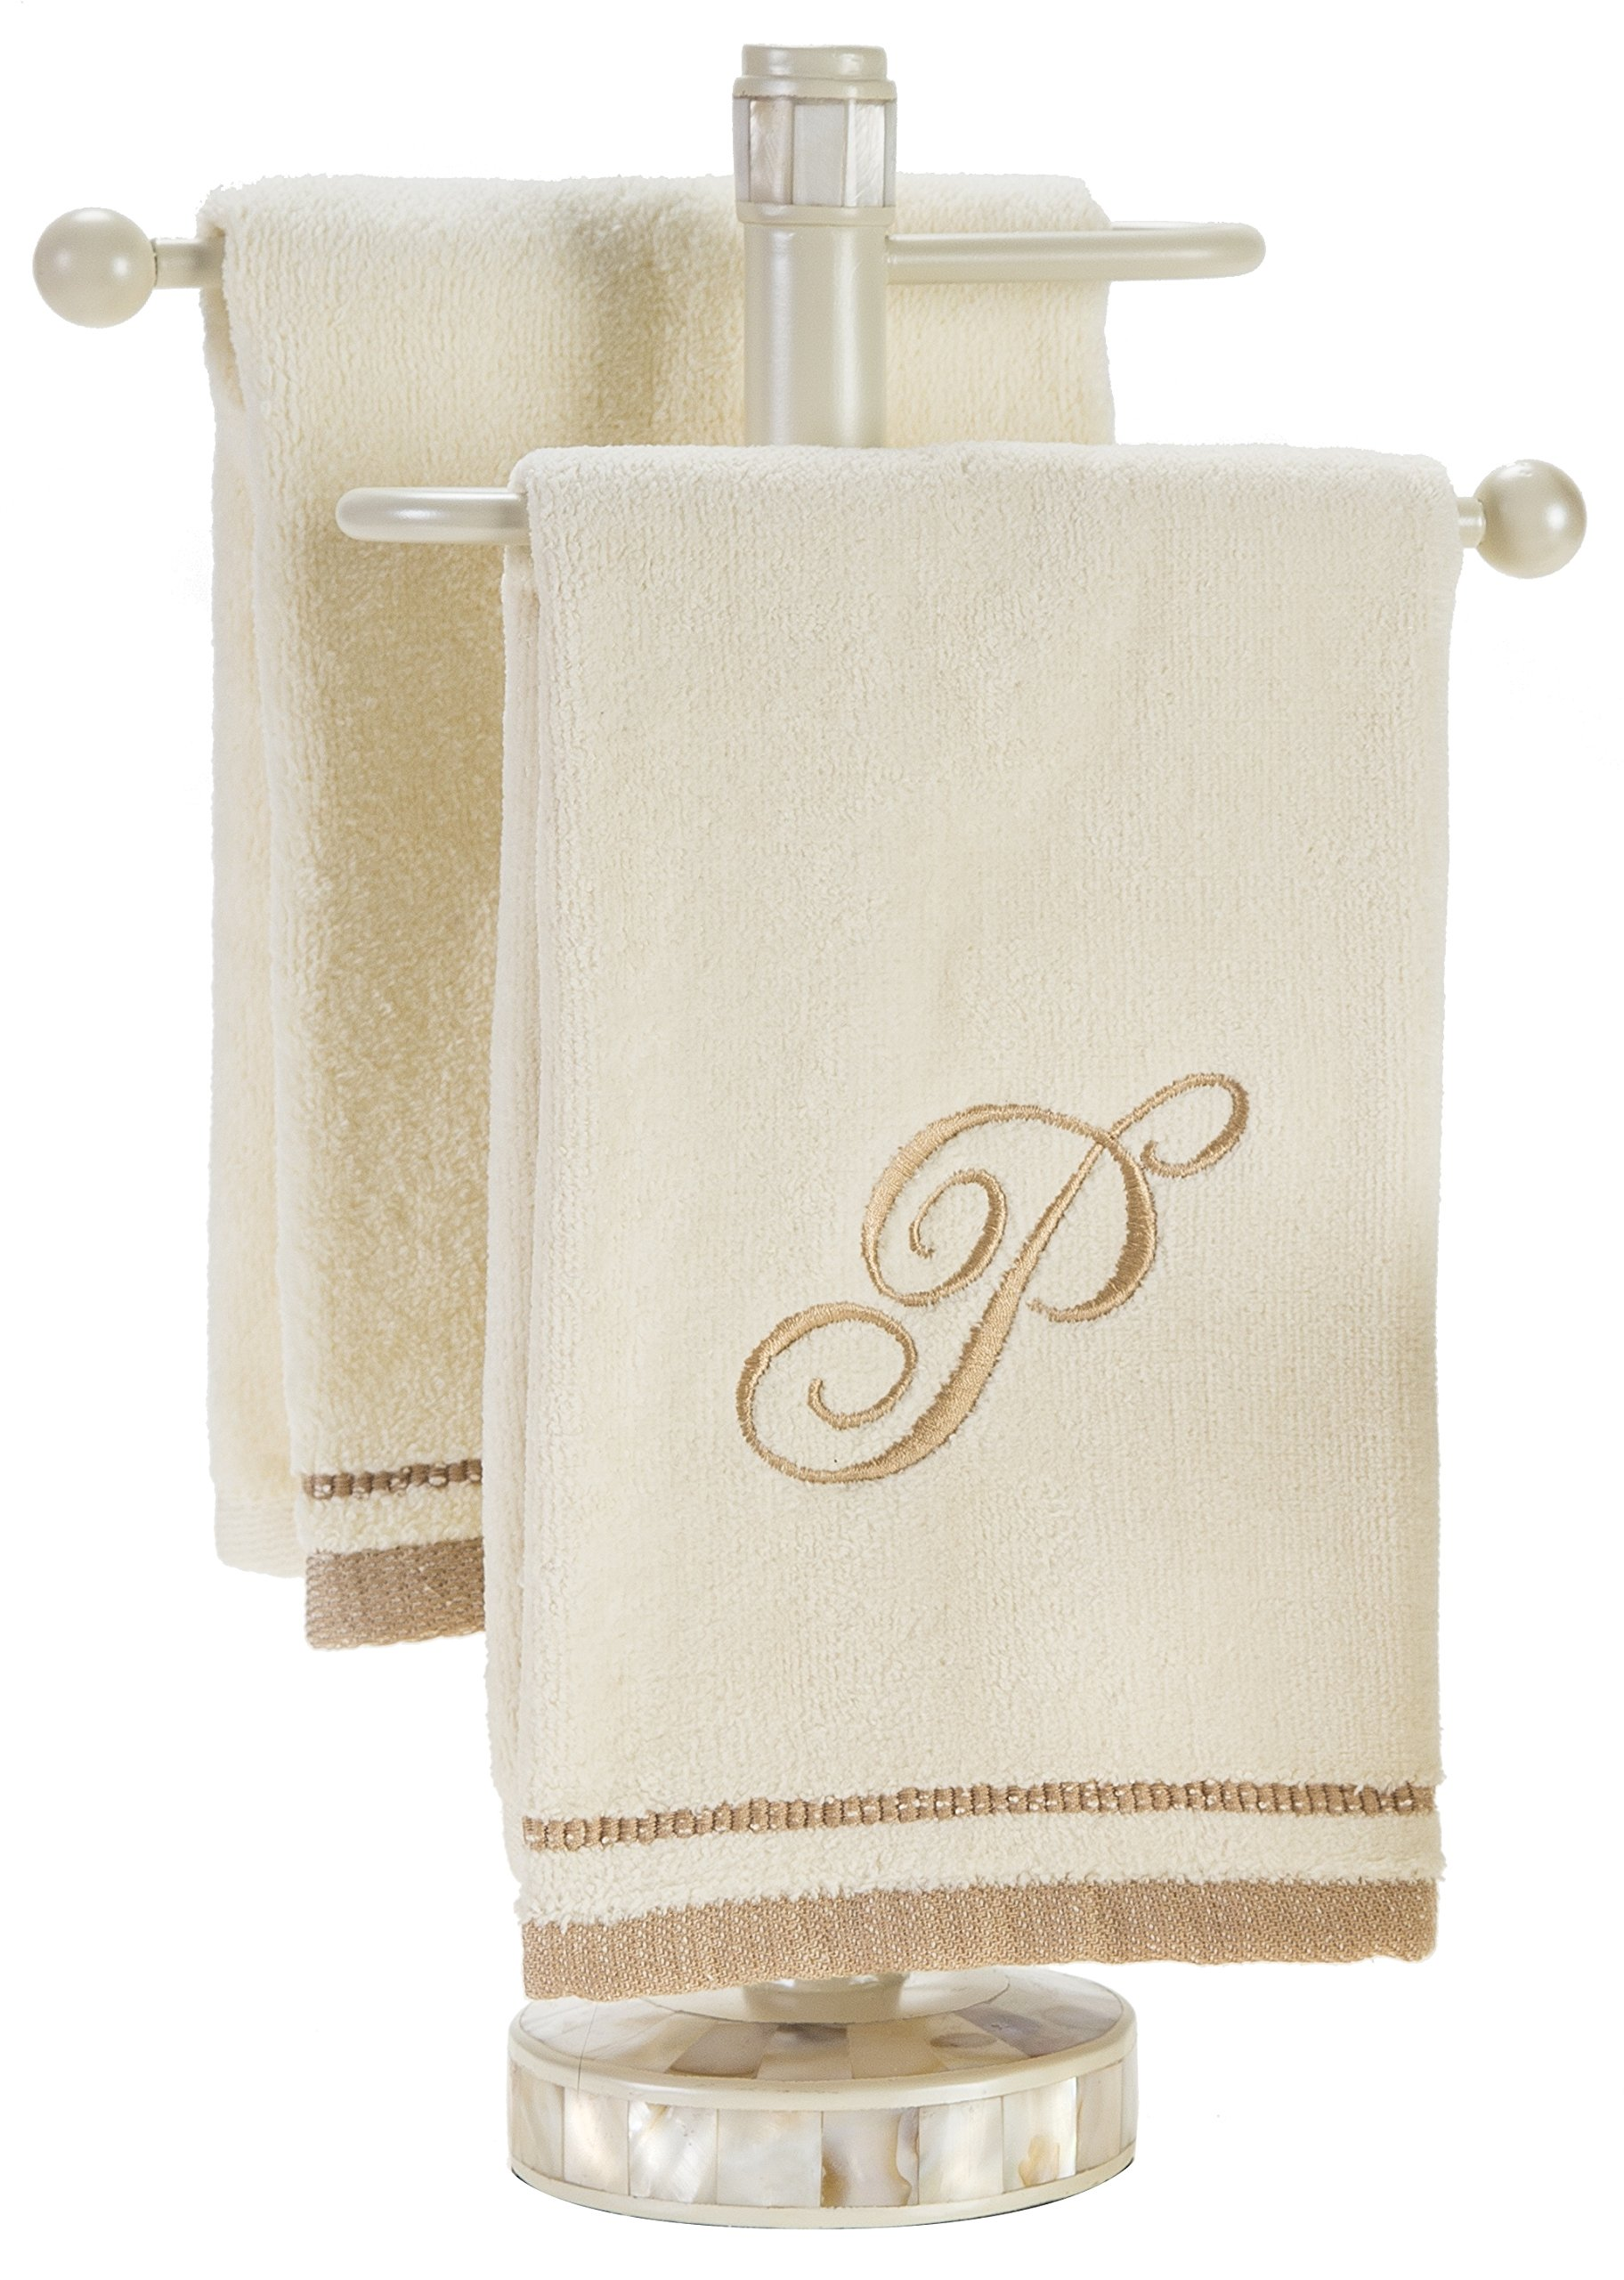 Monogrammed Gifts, Fingertip Towels, 11 x 18 Inches - Set of 4- Decorative Golden Brown Embroidered Towel - Extra Absorbent 100% Cotton- Personalized Gift- For Bathroom/Kitchen- Initial S (Ivory) by Creative Scents (Image #6)